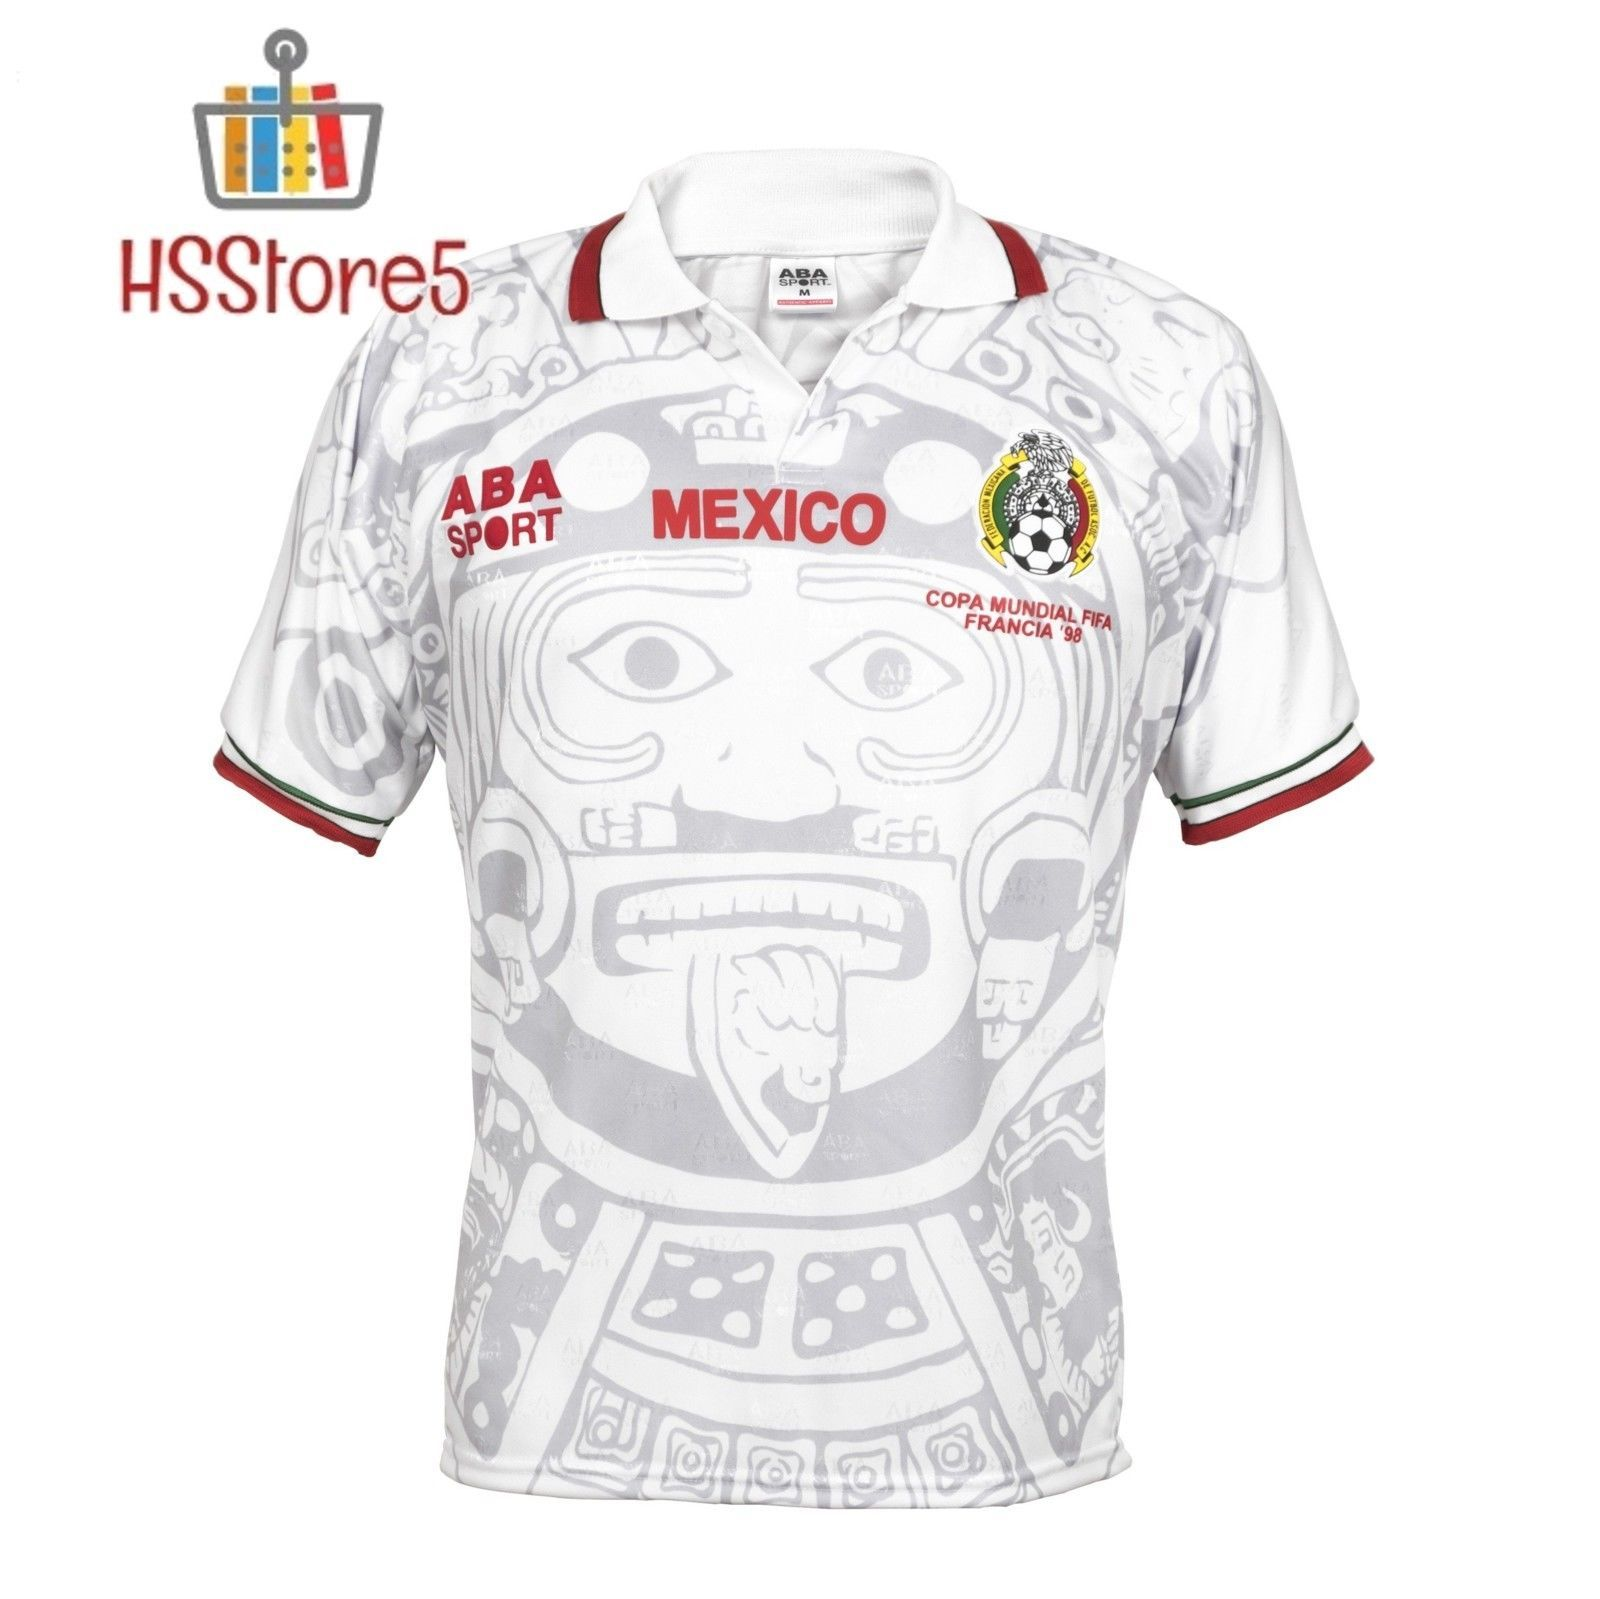 79f3130de15 ABA Sport Mexico Authentic 1998 World Cup Soccer Jersey